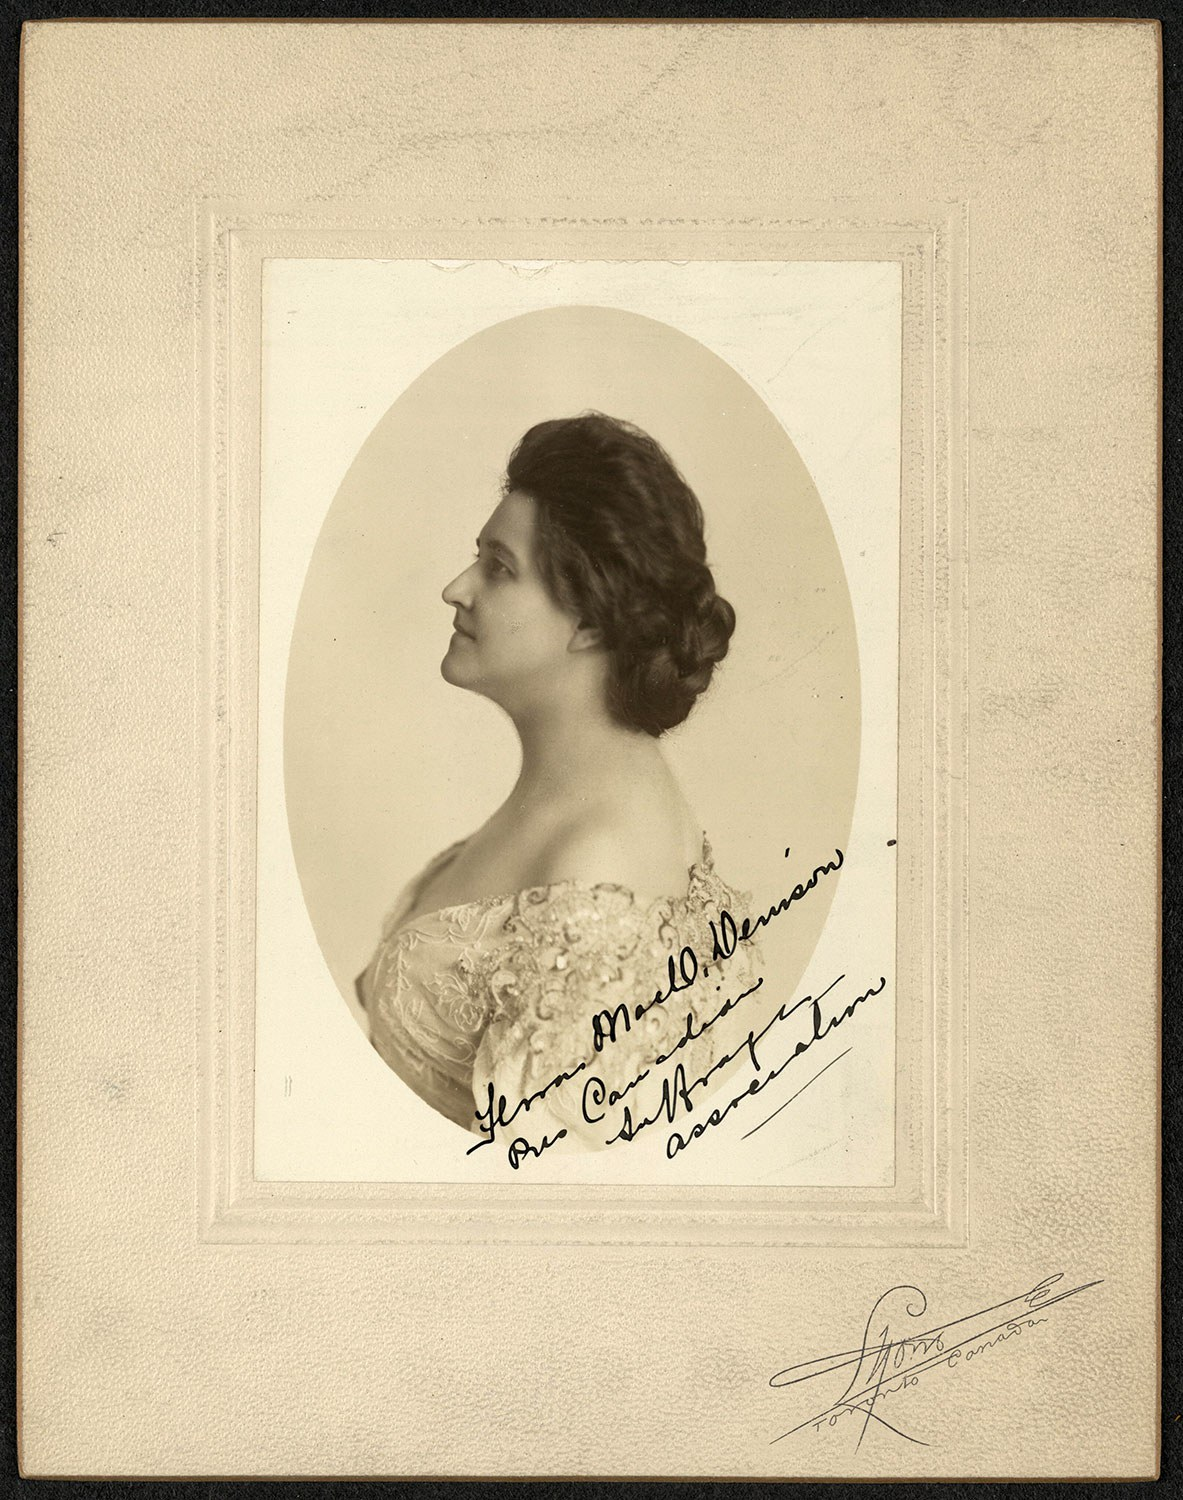 Flora MacDonald Denison, Pres[ident] Canadian Suffrage Association, Women of Protest: Photograph from the Records of the National Woman's Party, Manuscript Division, Library of Congress, Washington, D.C. www.loc.gov/resource/mnwp.149016 March 13, 2018